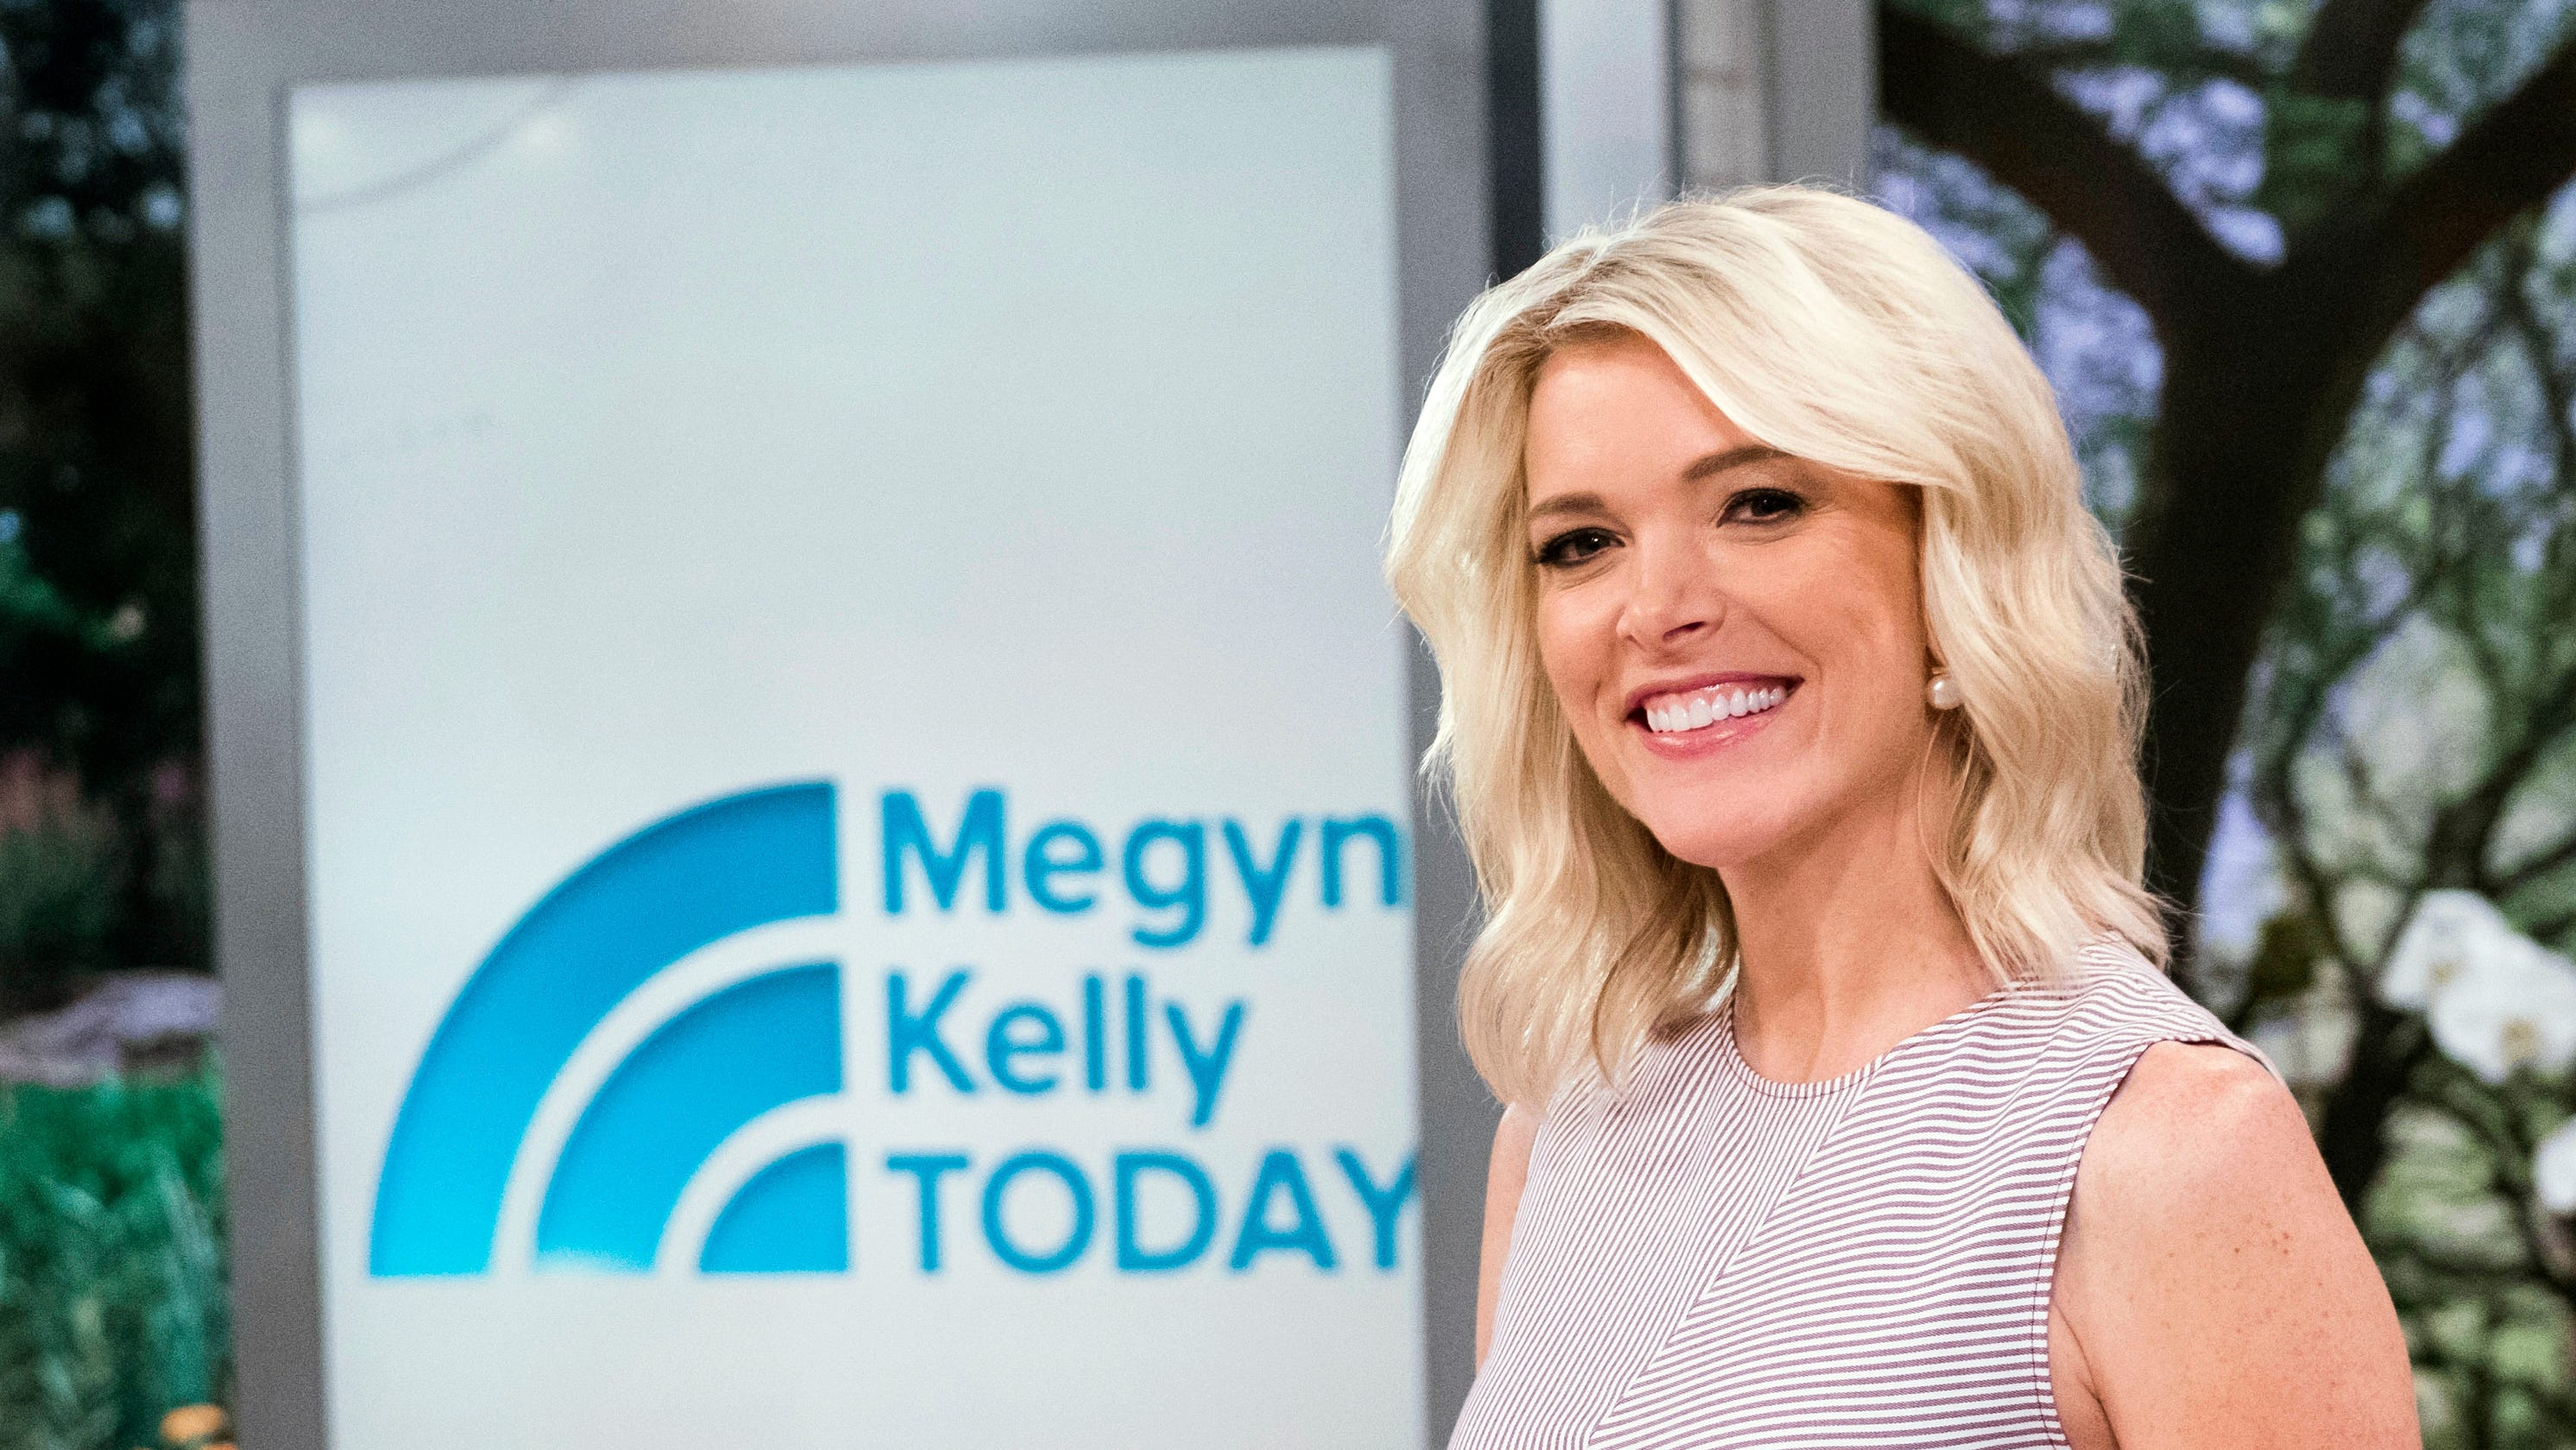 Megyn Kelly negotiating exit from NBC